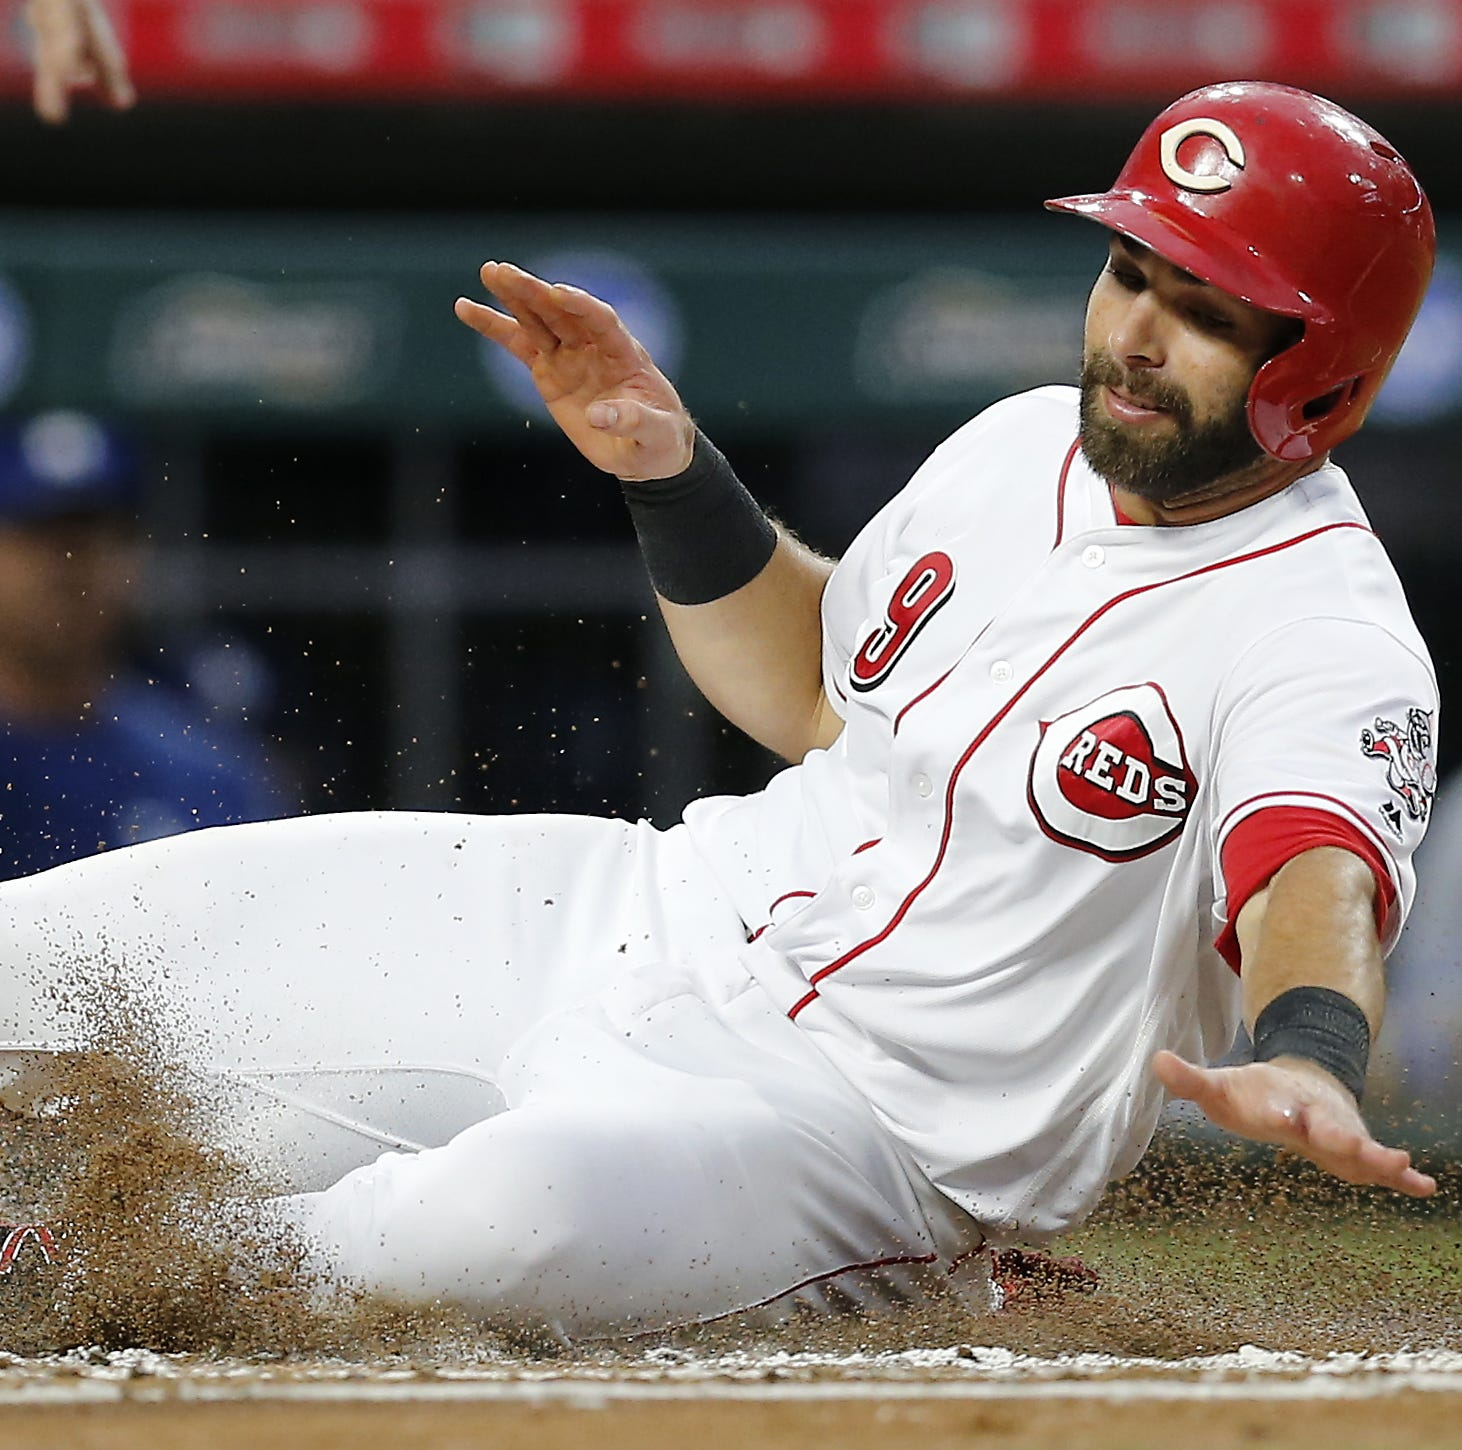 Cincinnati Reds greenlit for steal attempts in spring training; in-season focus different